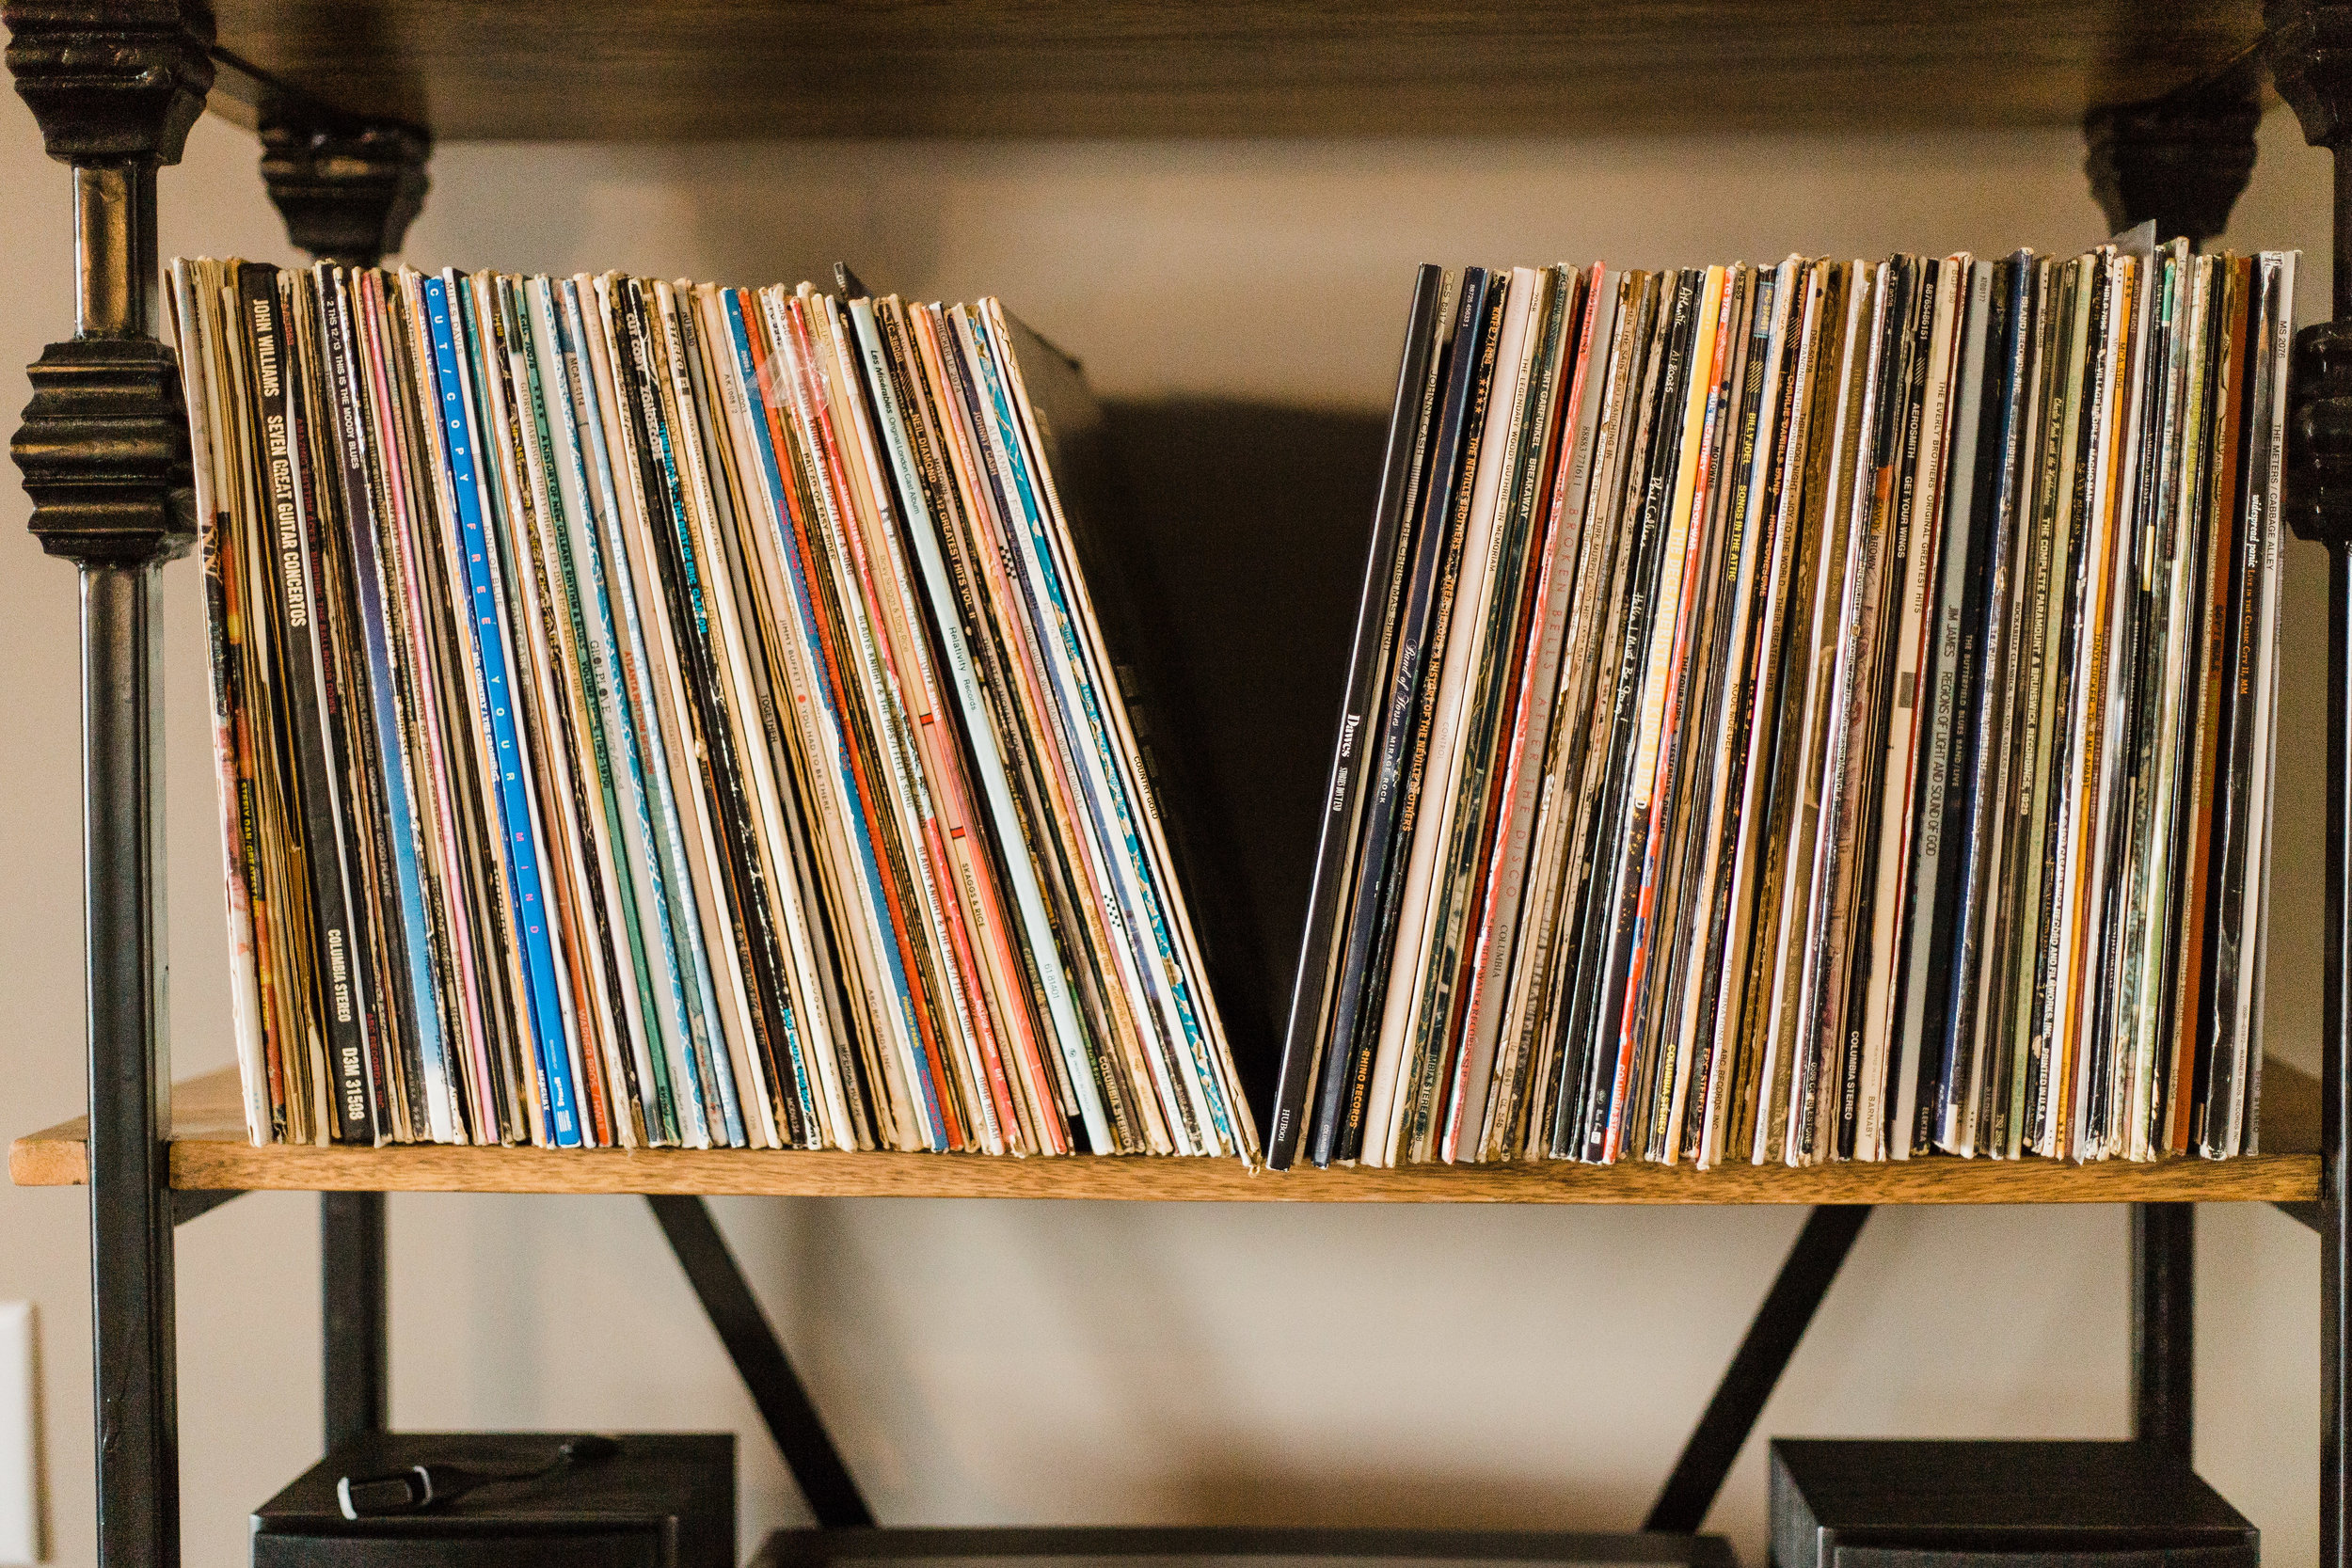 I fell in love with the vinyl shelf at her home